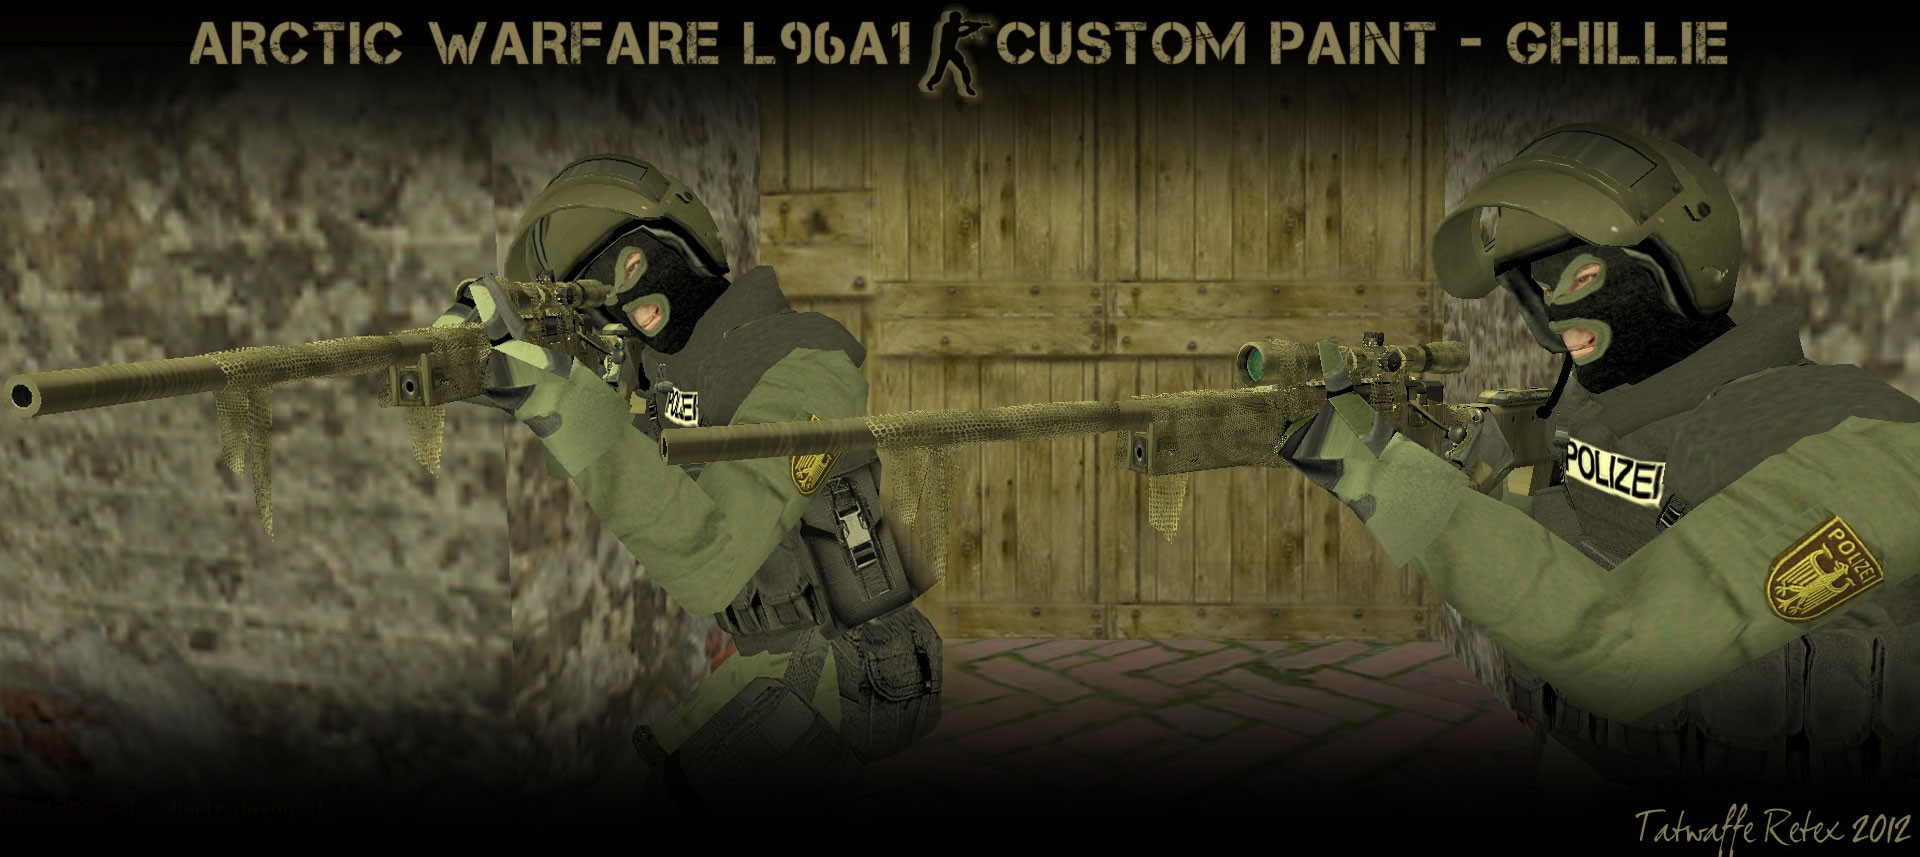 Скриншот AI AW L96A1 Custom Paint Ghillie Retex